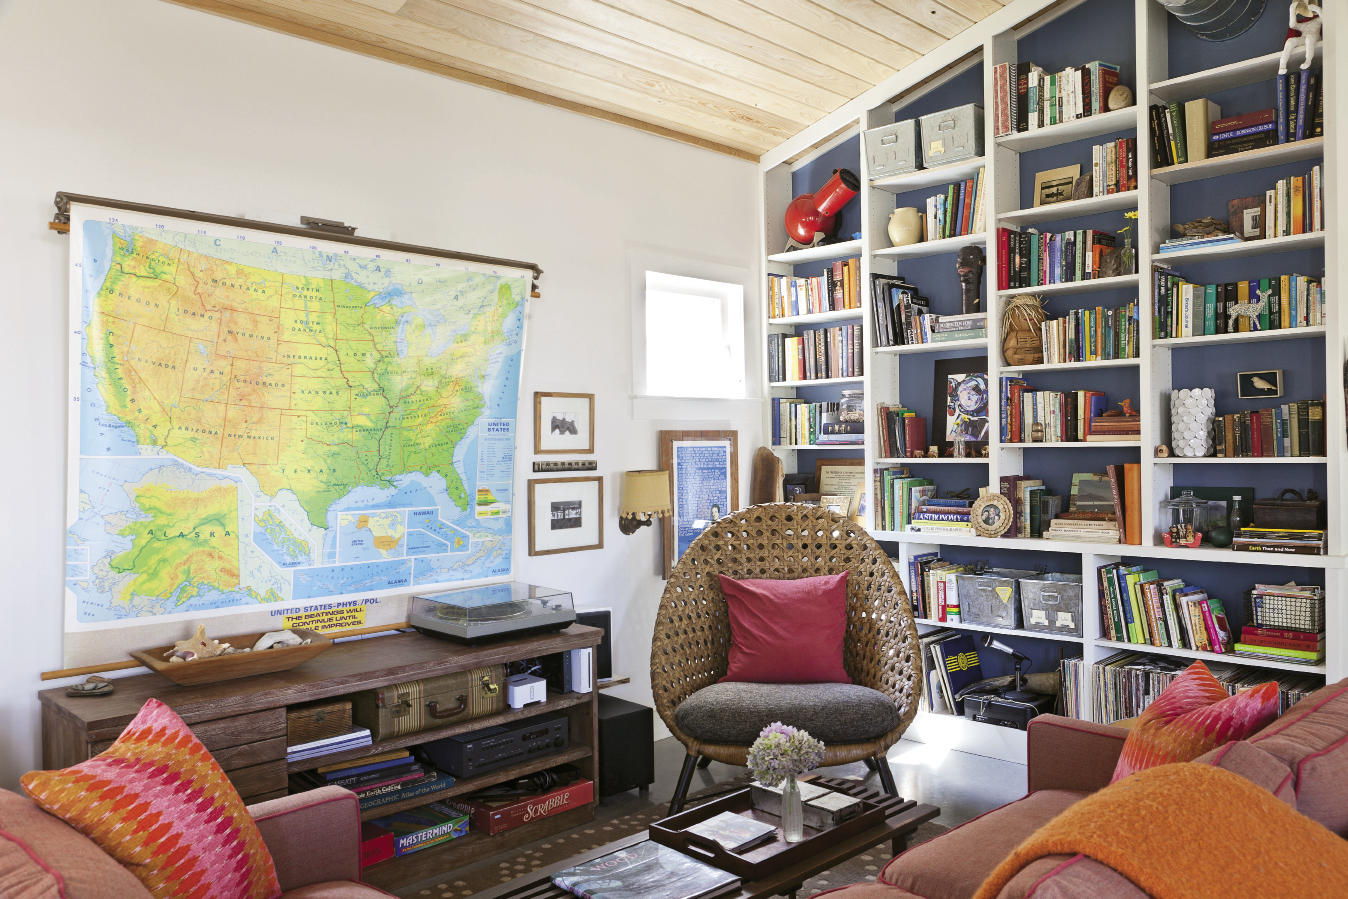 Shed roofing allows for ceilings that soar up to 14 feet in the living room; built-in shelves nod to the space-efficient houseboats that inspired the family to downsize.